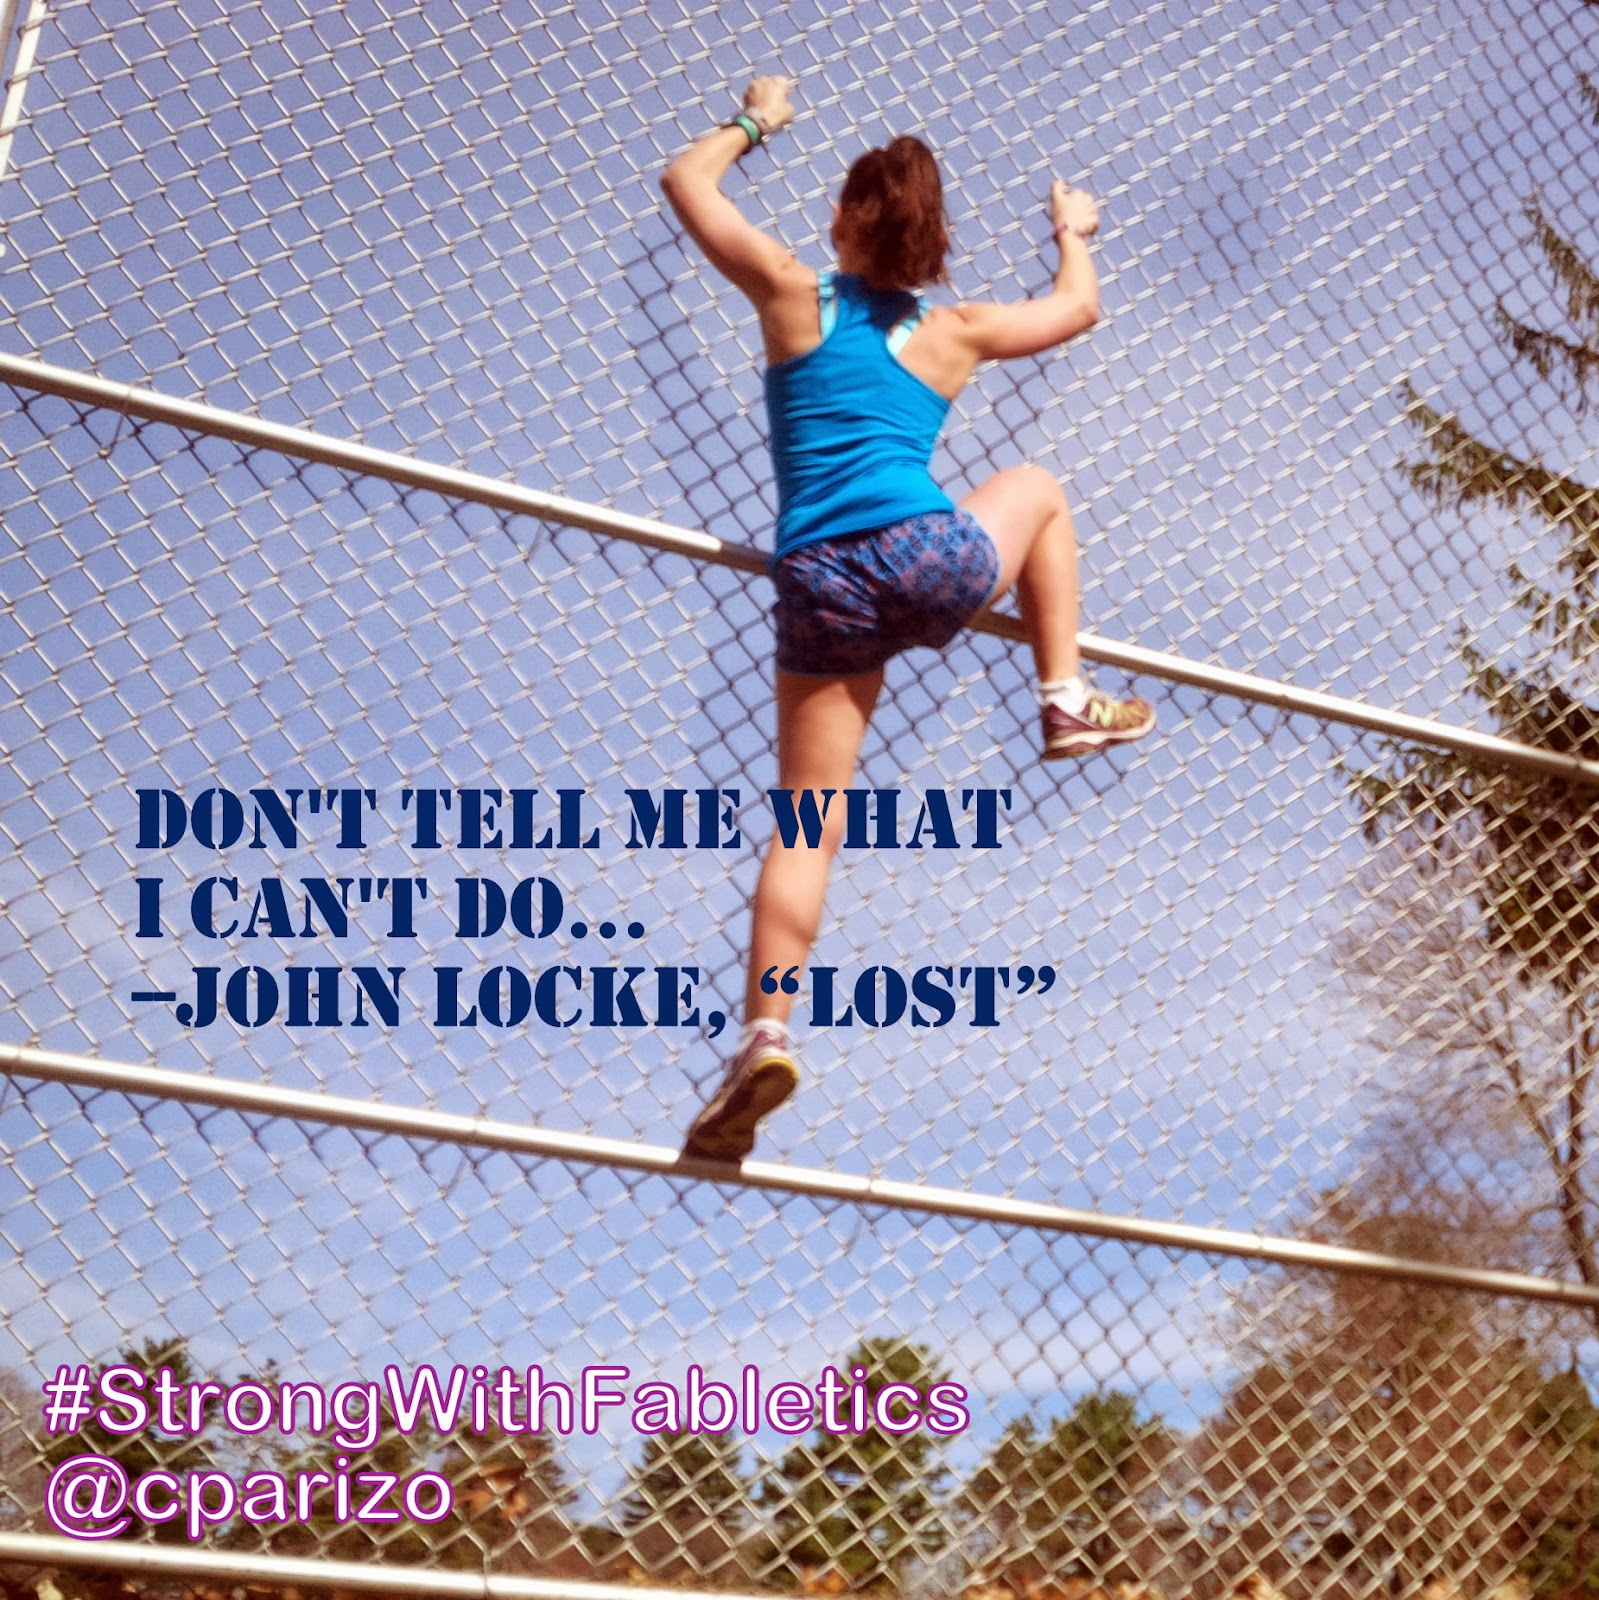 "Don't tell me what I can't do -- John Locke, ""LOST"""